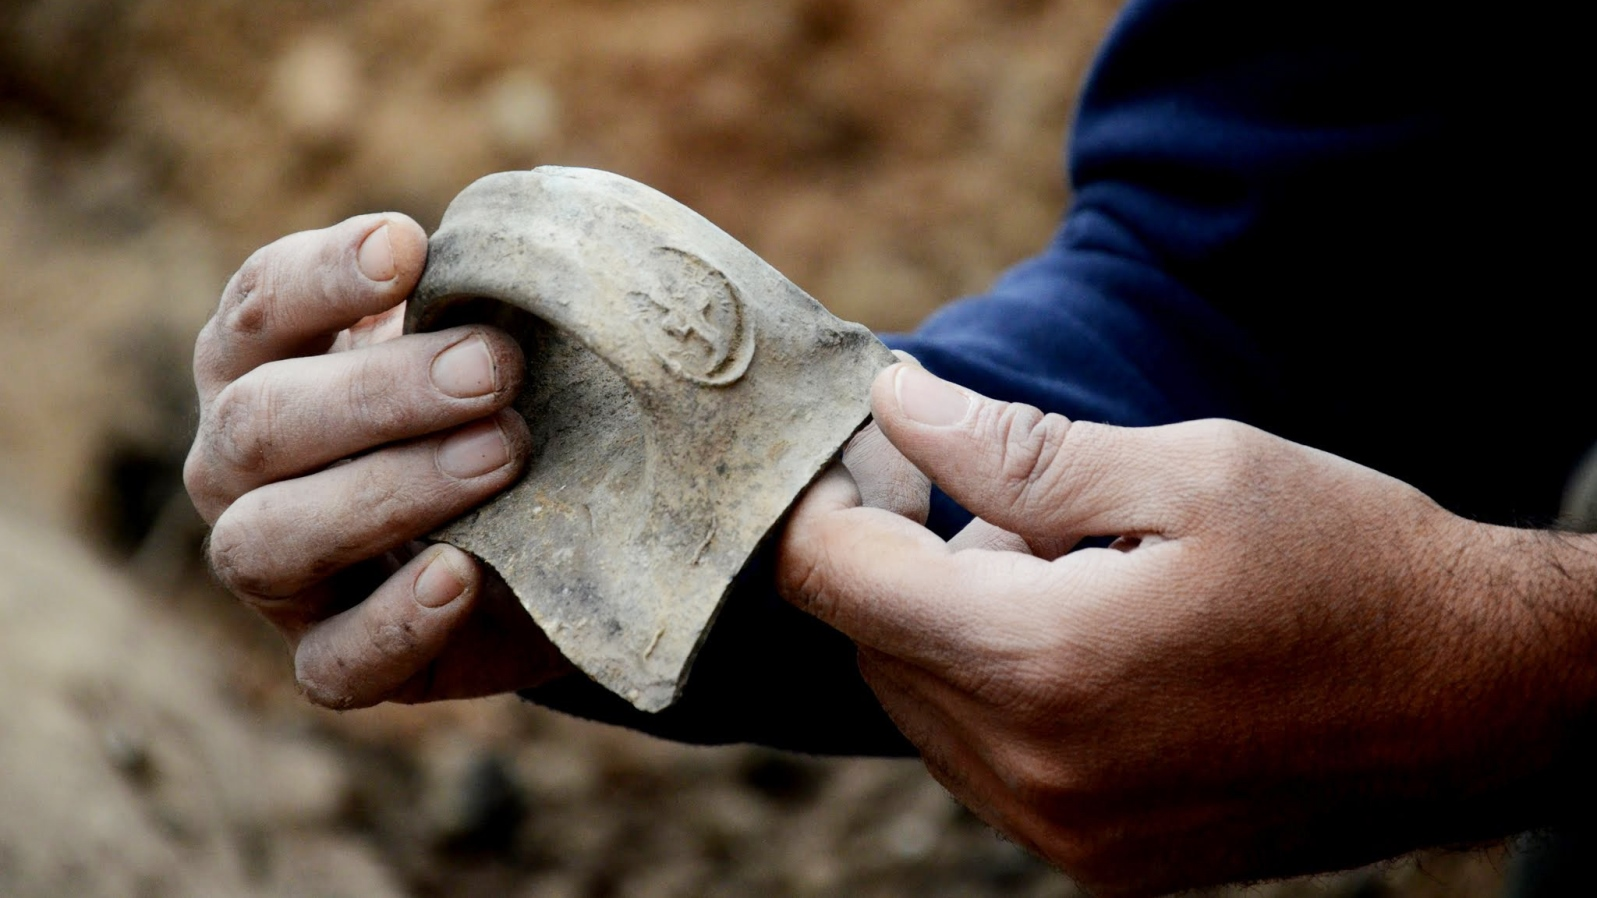 A seal inscription on a jar handle found at Tel Lachish. Photo by Yoli Shwartz/Israel Antiquities Authority.